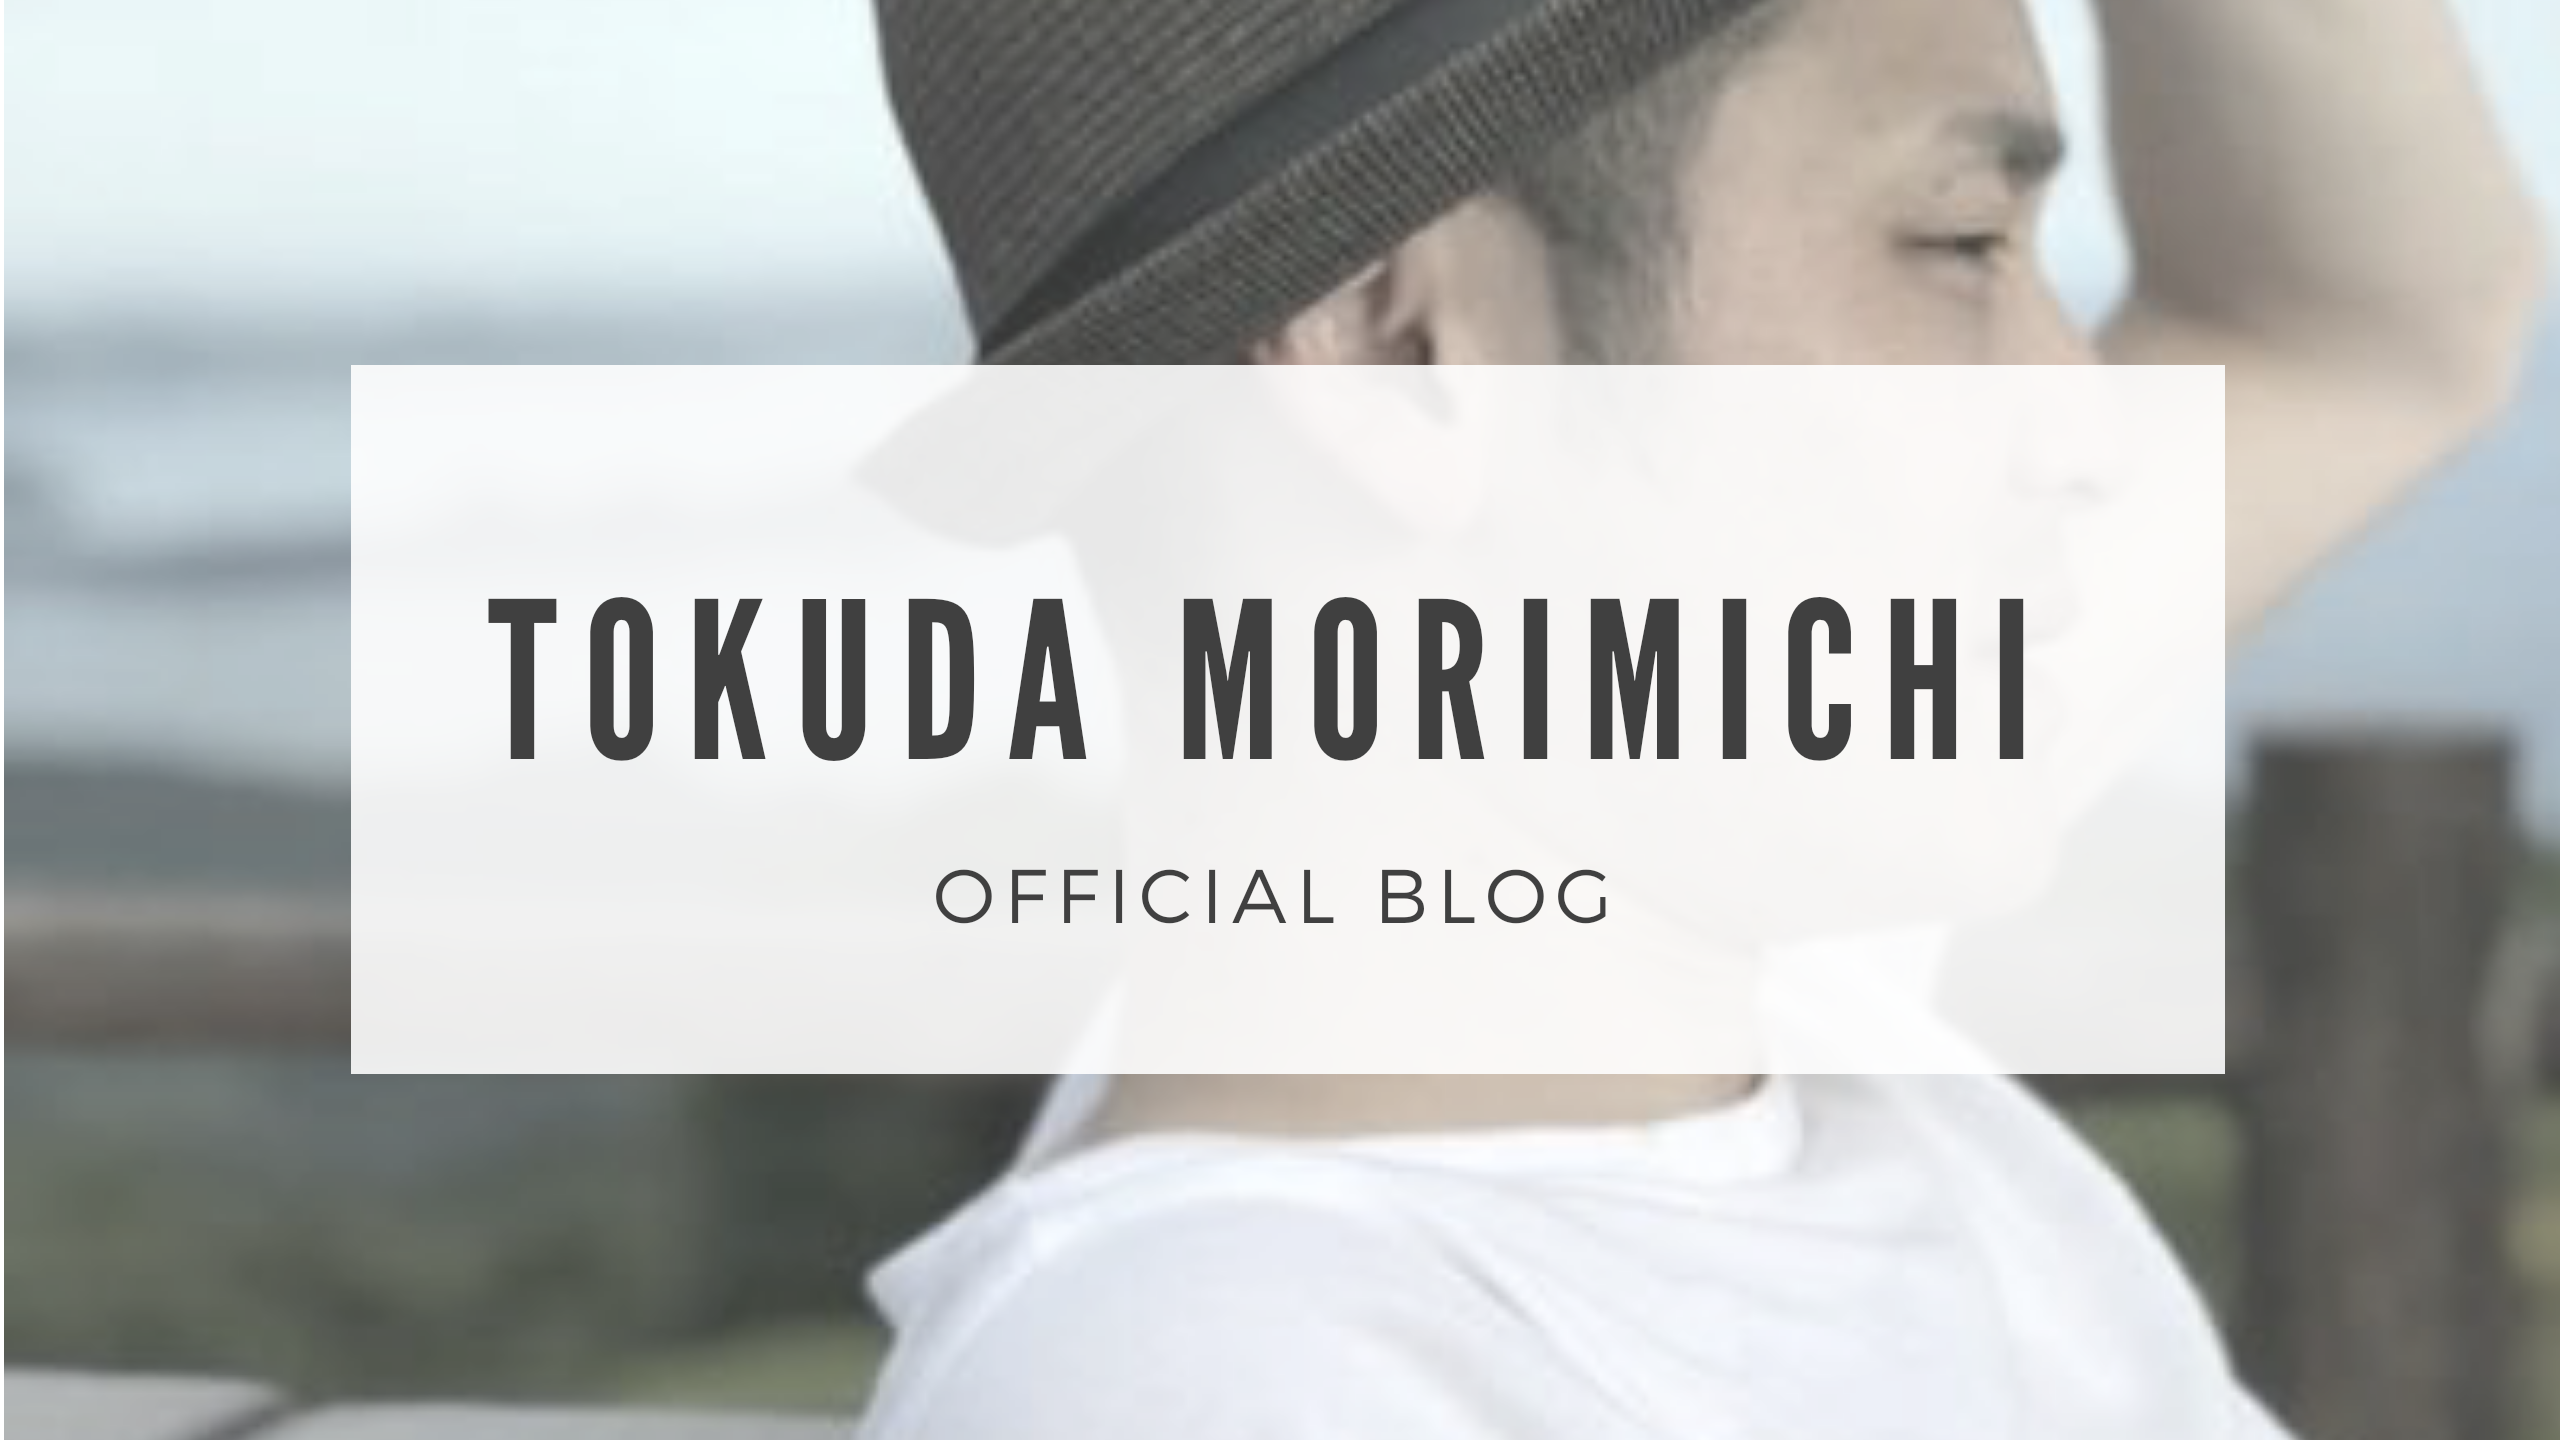 TOKUDA MORIMICHI OFFICIAL BLOG